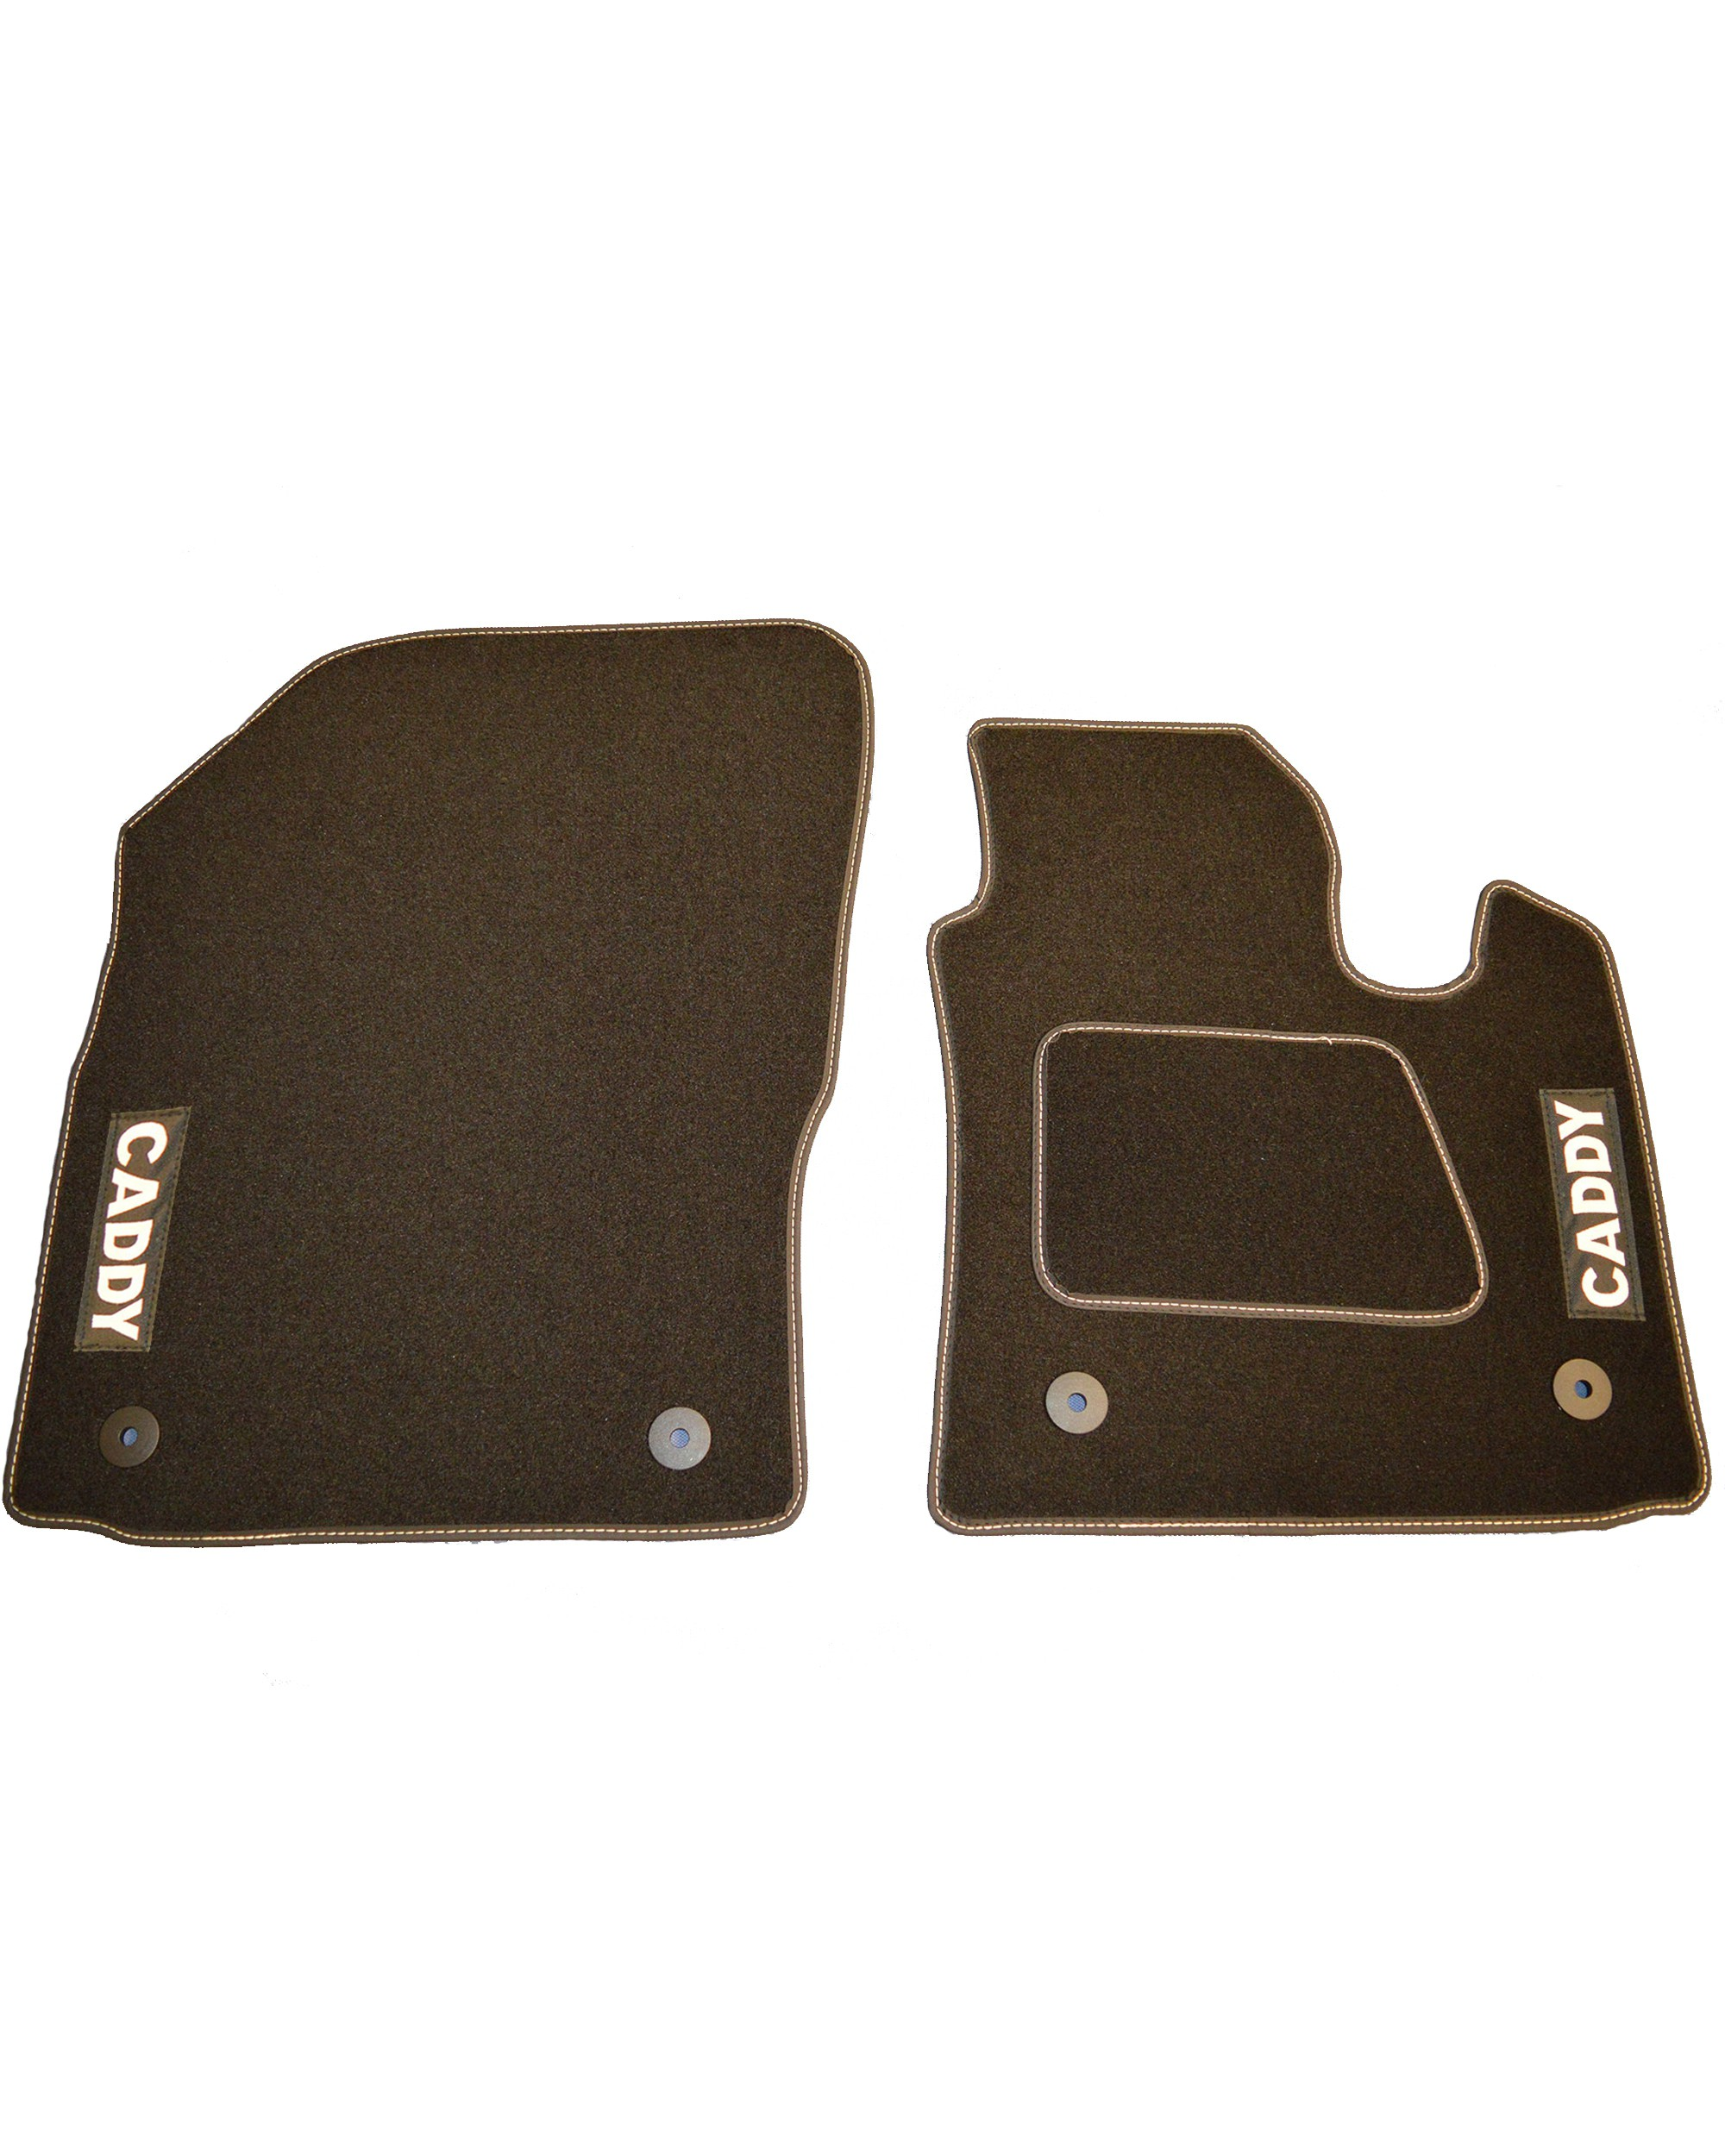 Volkswagen VW Caddy Floor Mats With Logo